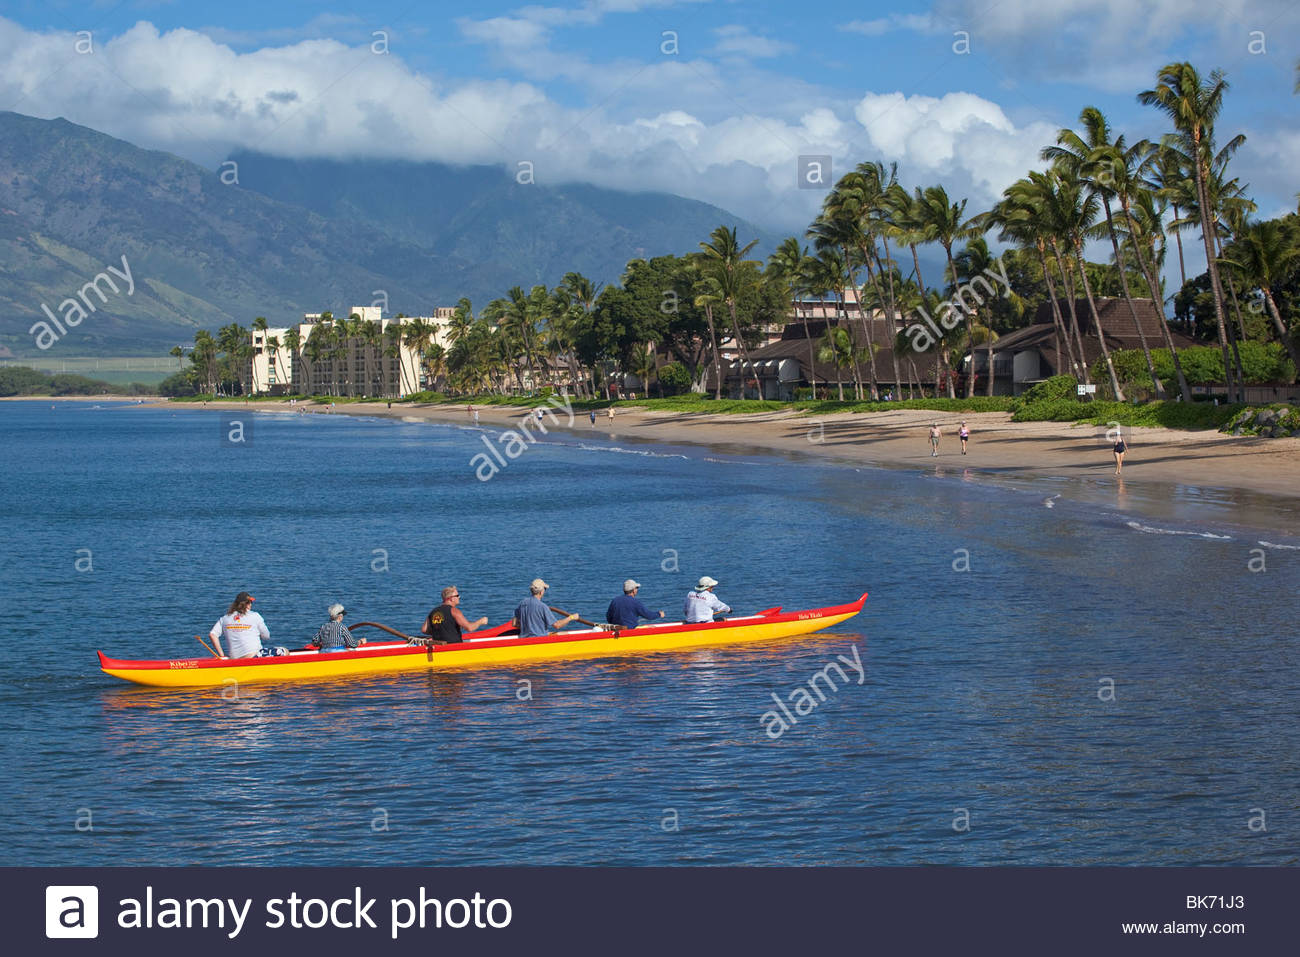 Outrigger canoes at Sugar Beach at the Kihei Canoe Club in Kihei on the island of Maui in the State of Hawaii USA Stock Photo